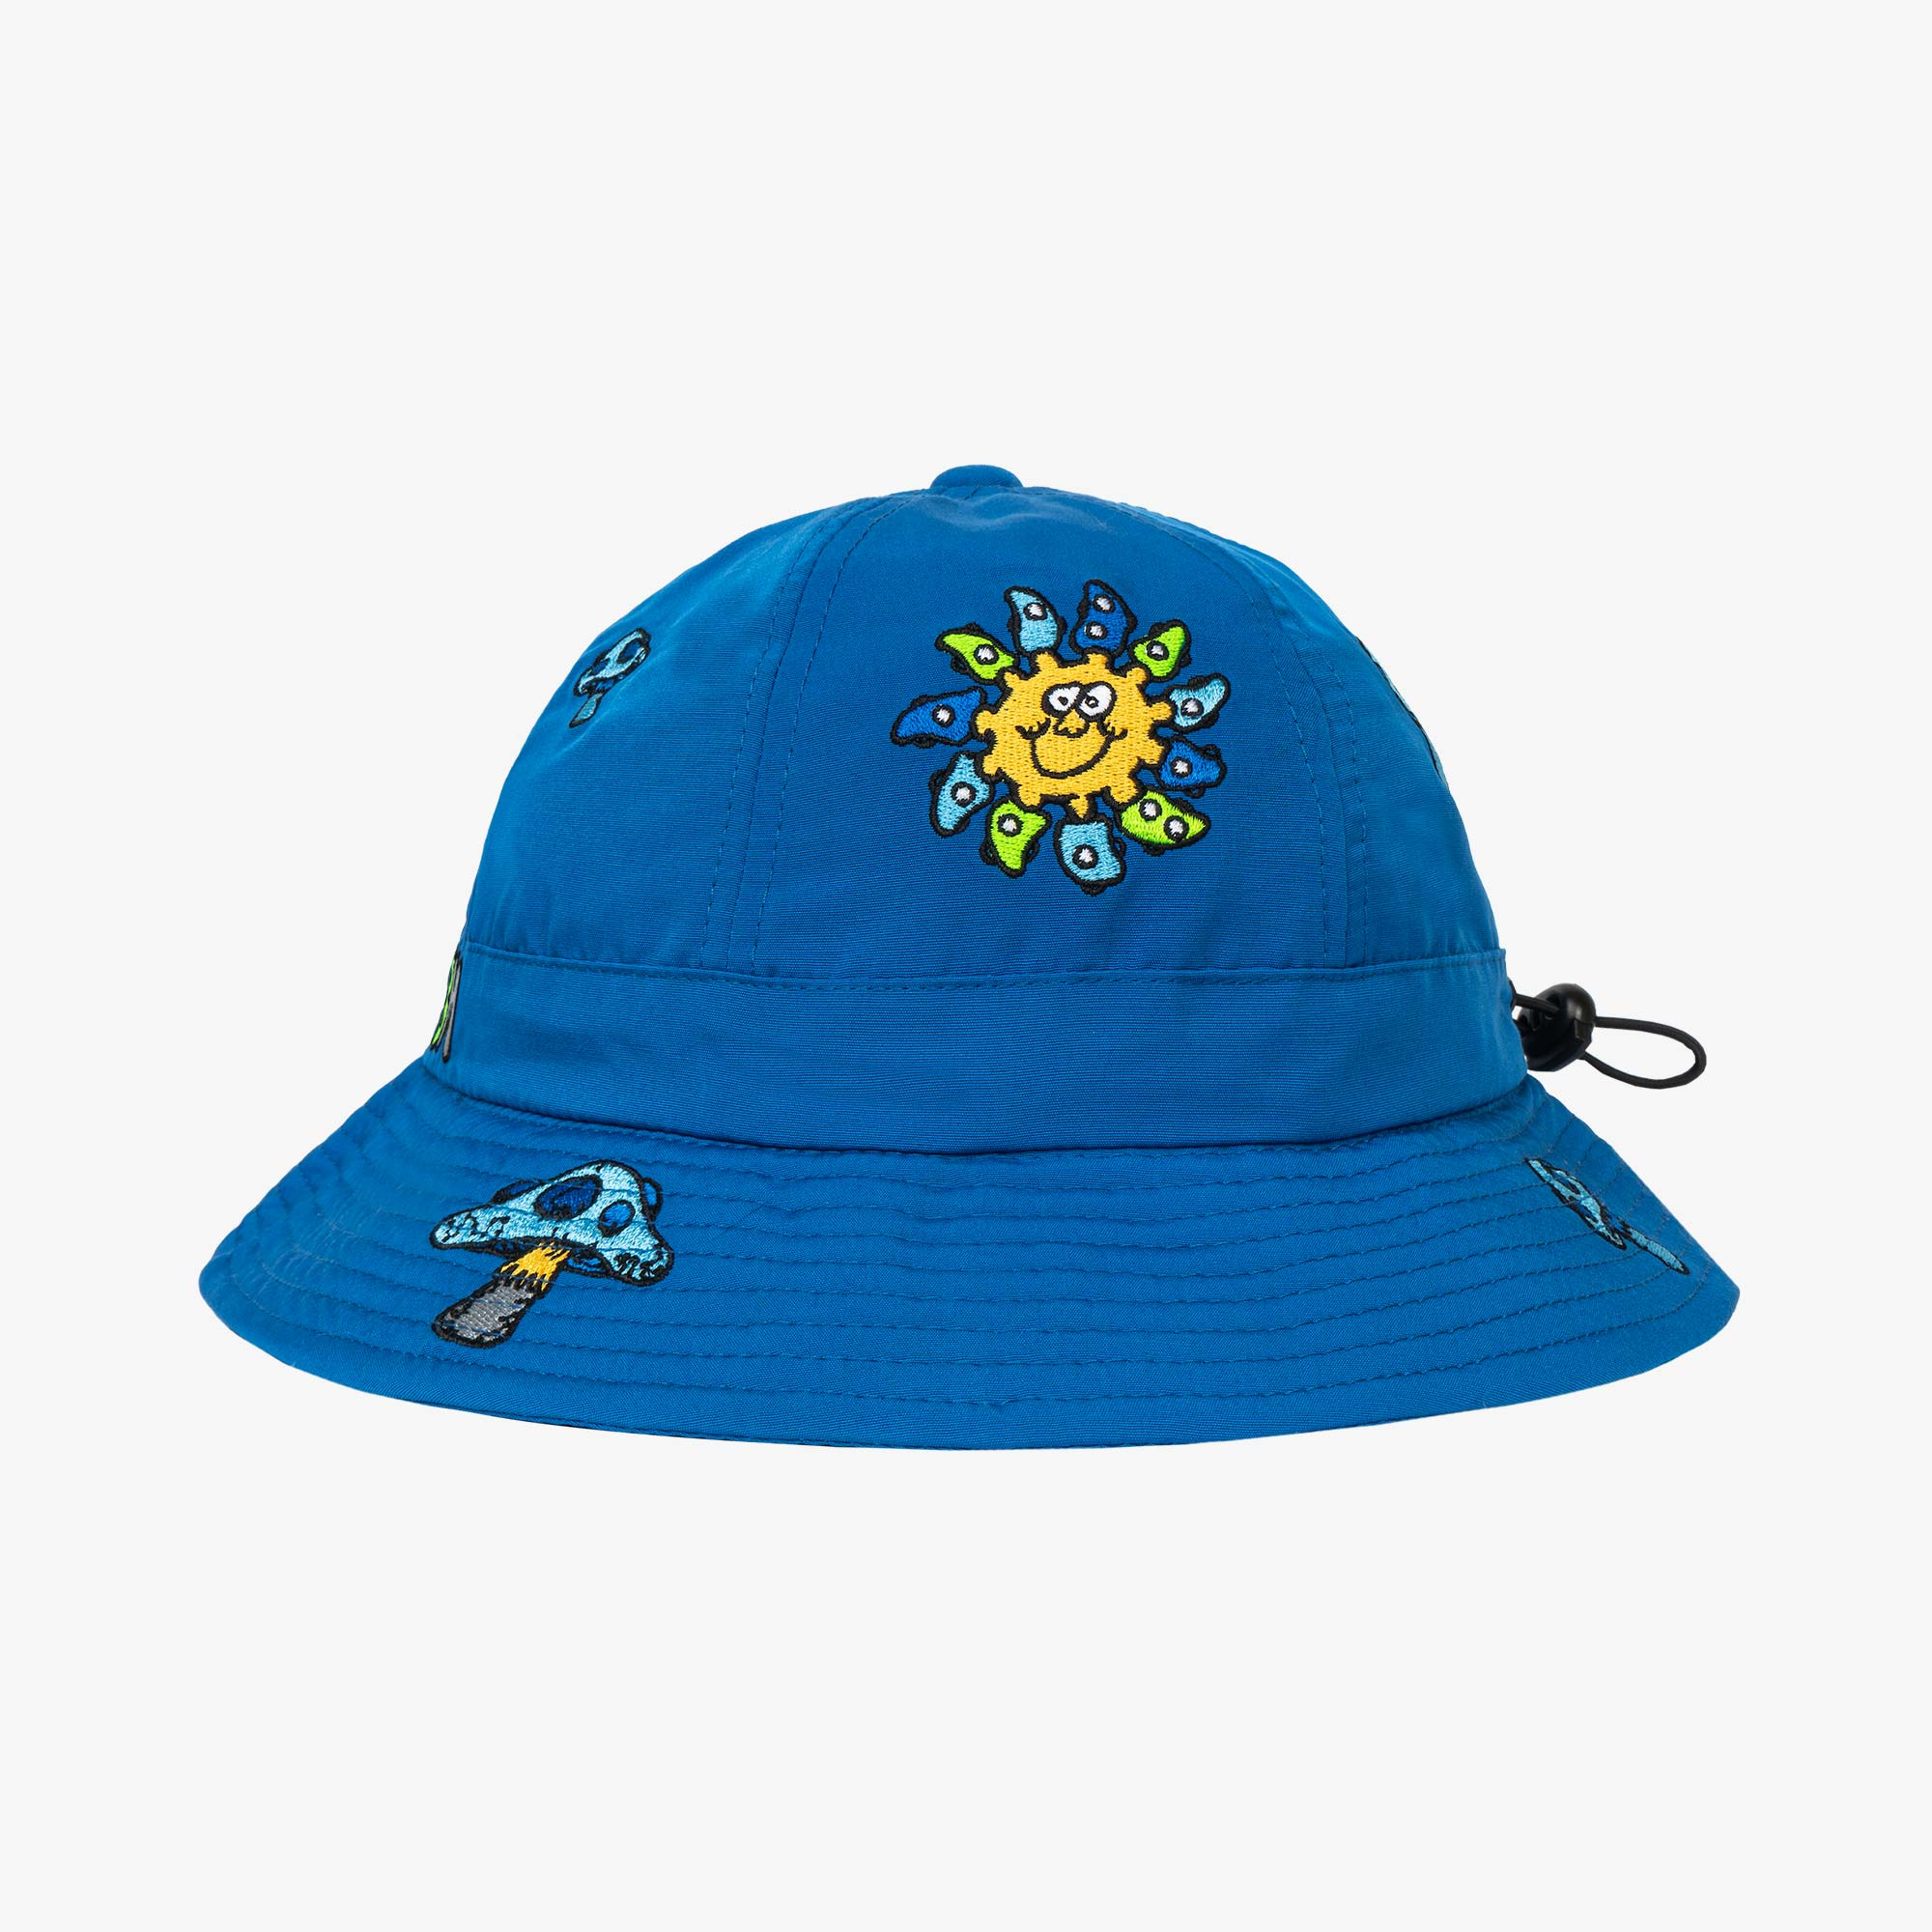 Real Bad Man Delic Embroidered Bell Bucket Hat - Blue 1